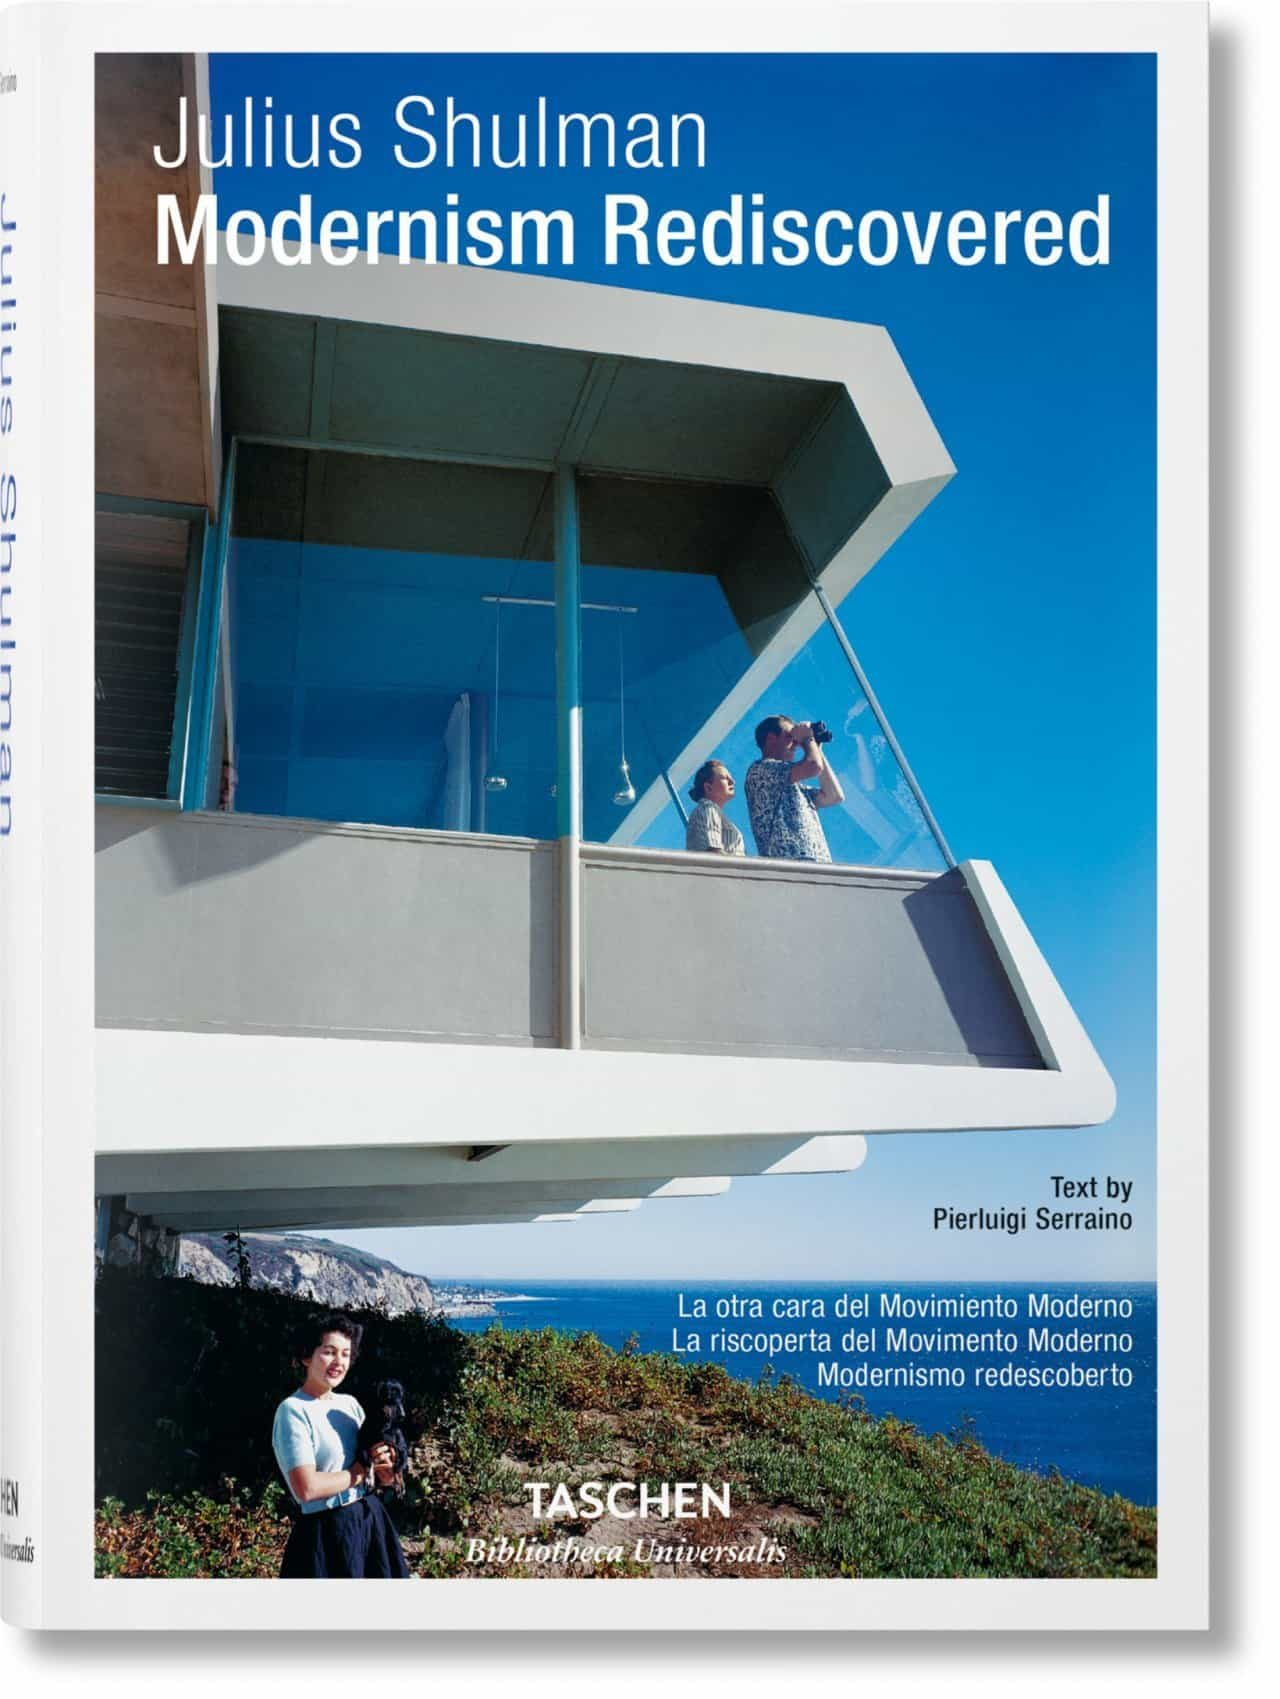 Modernism Rediscovered - Shulman Julius